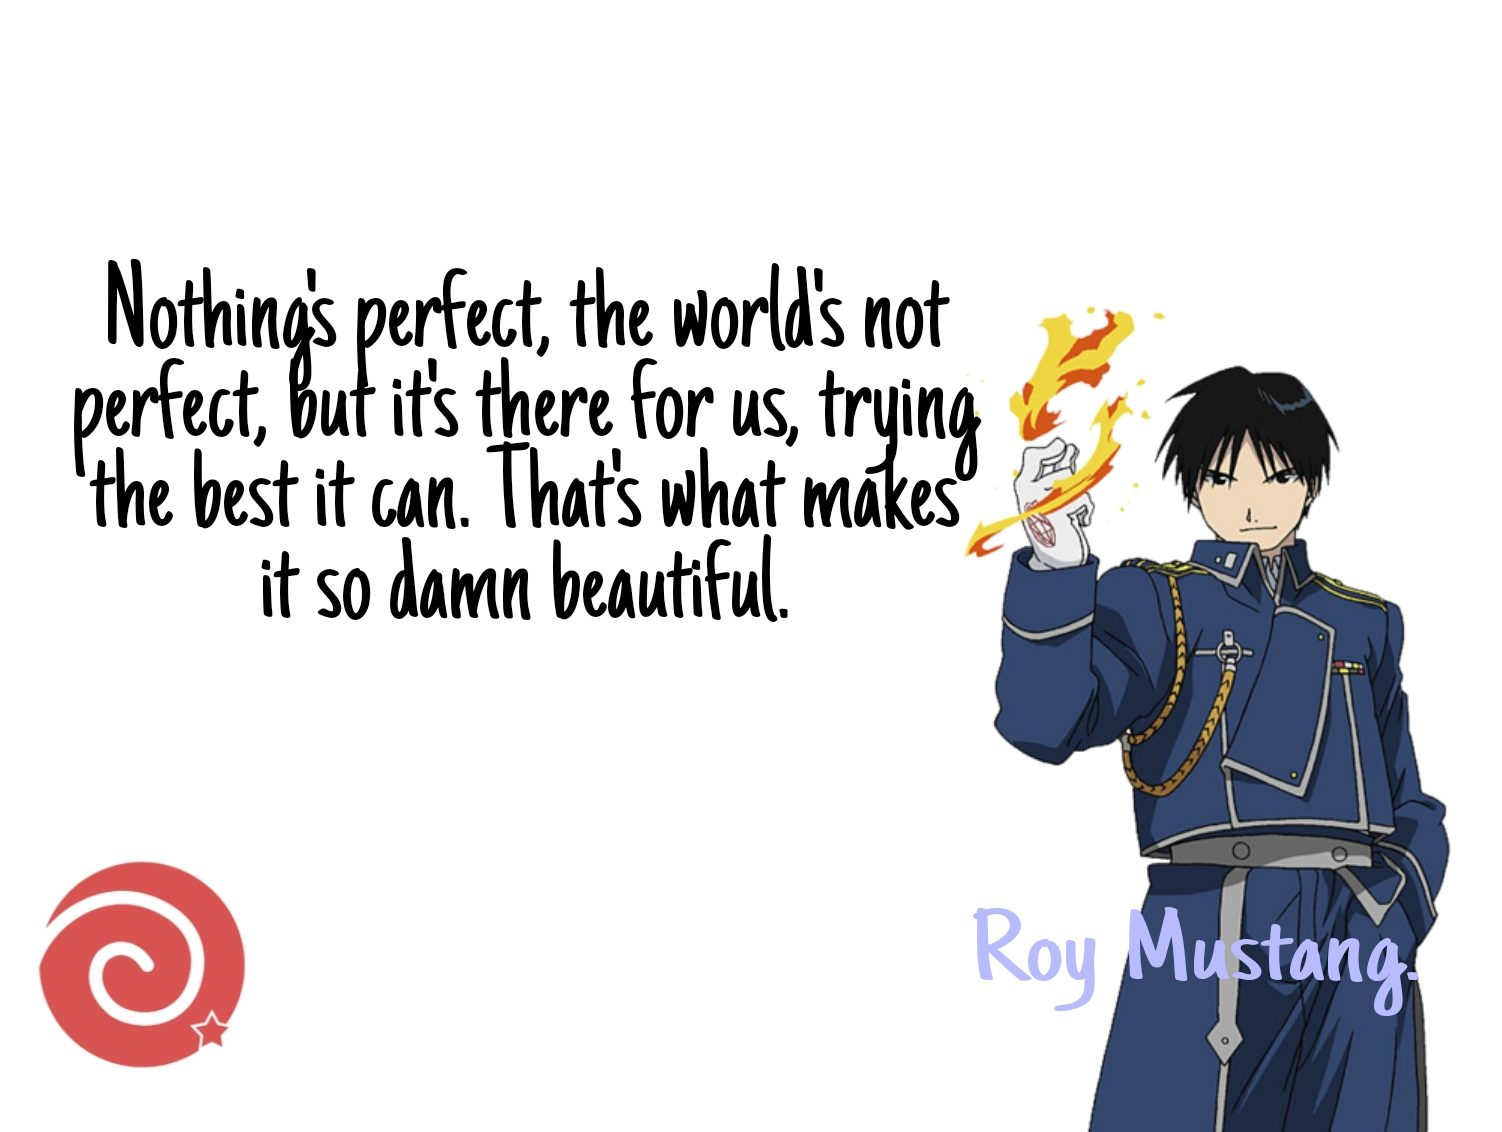 Quote by Roy Mustang